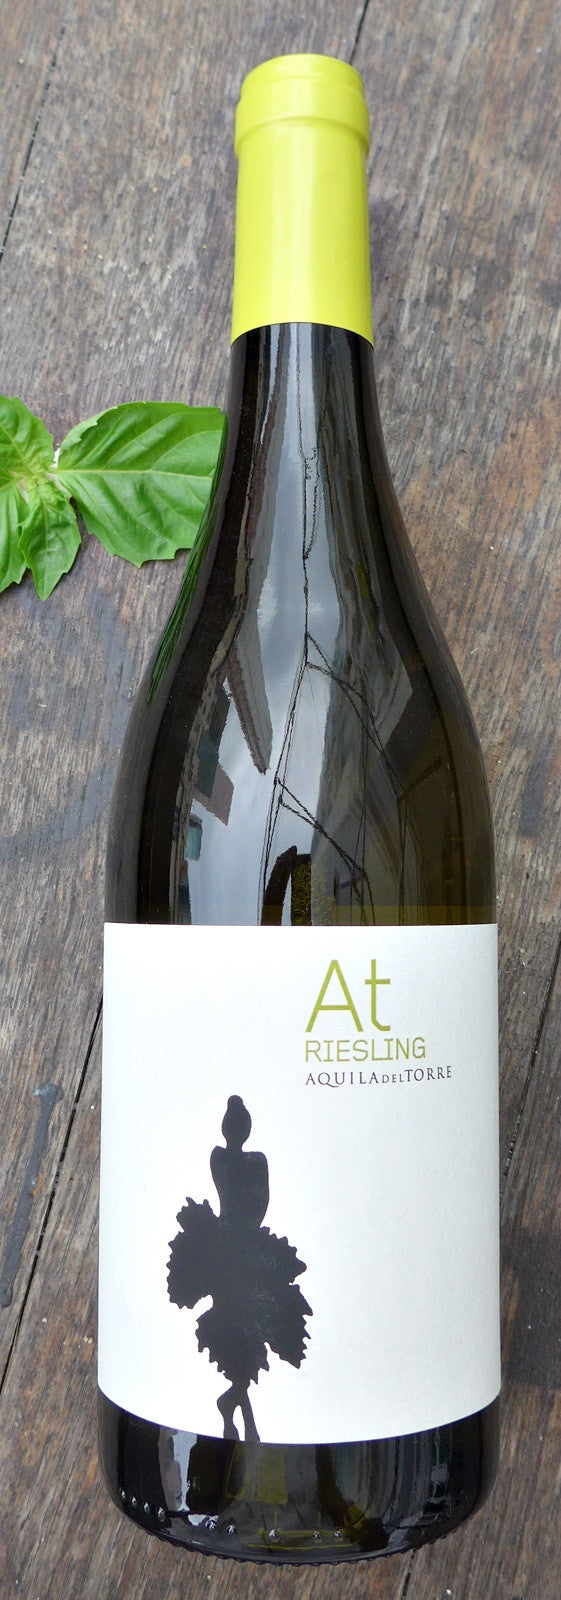 Aquila Del Torre At Riesling 2013